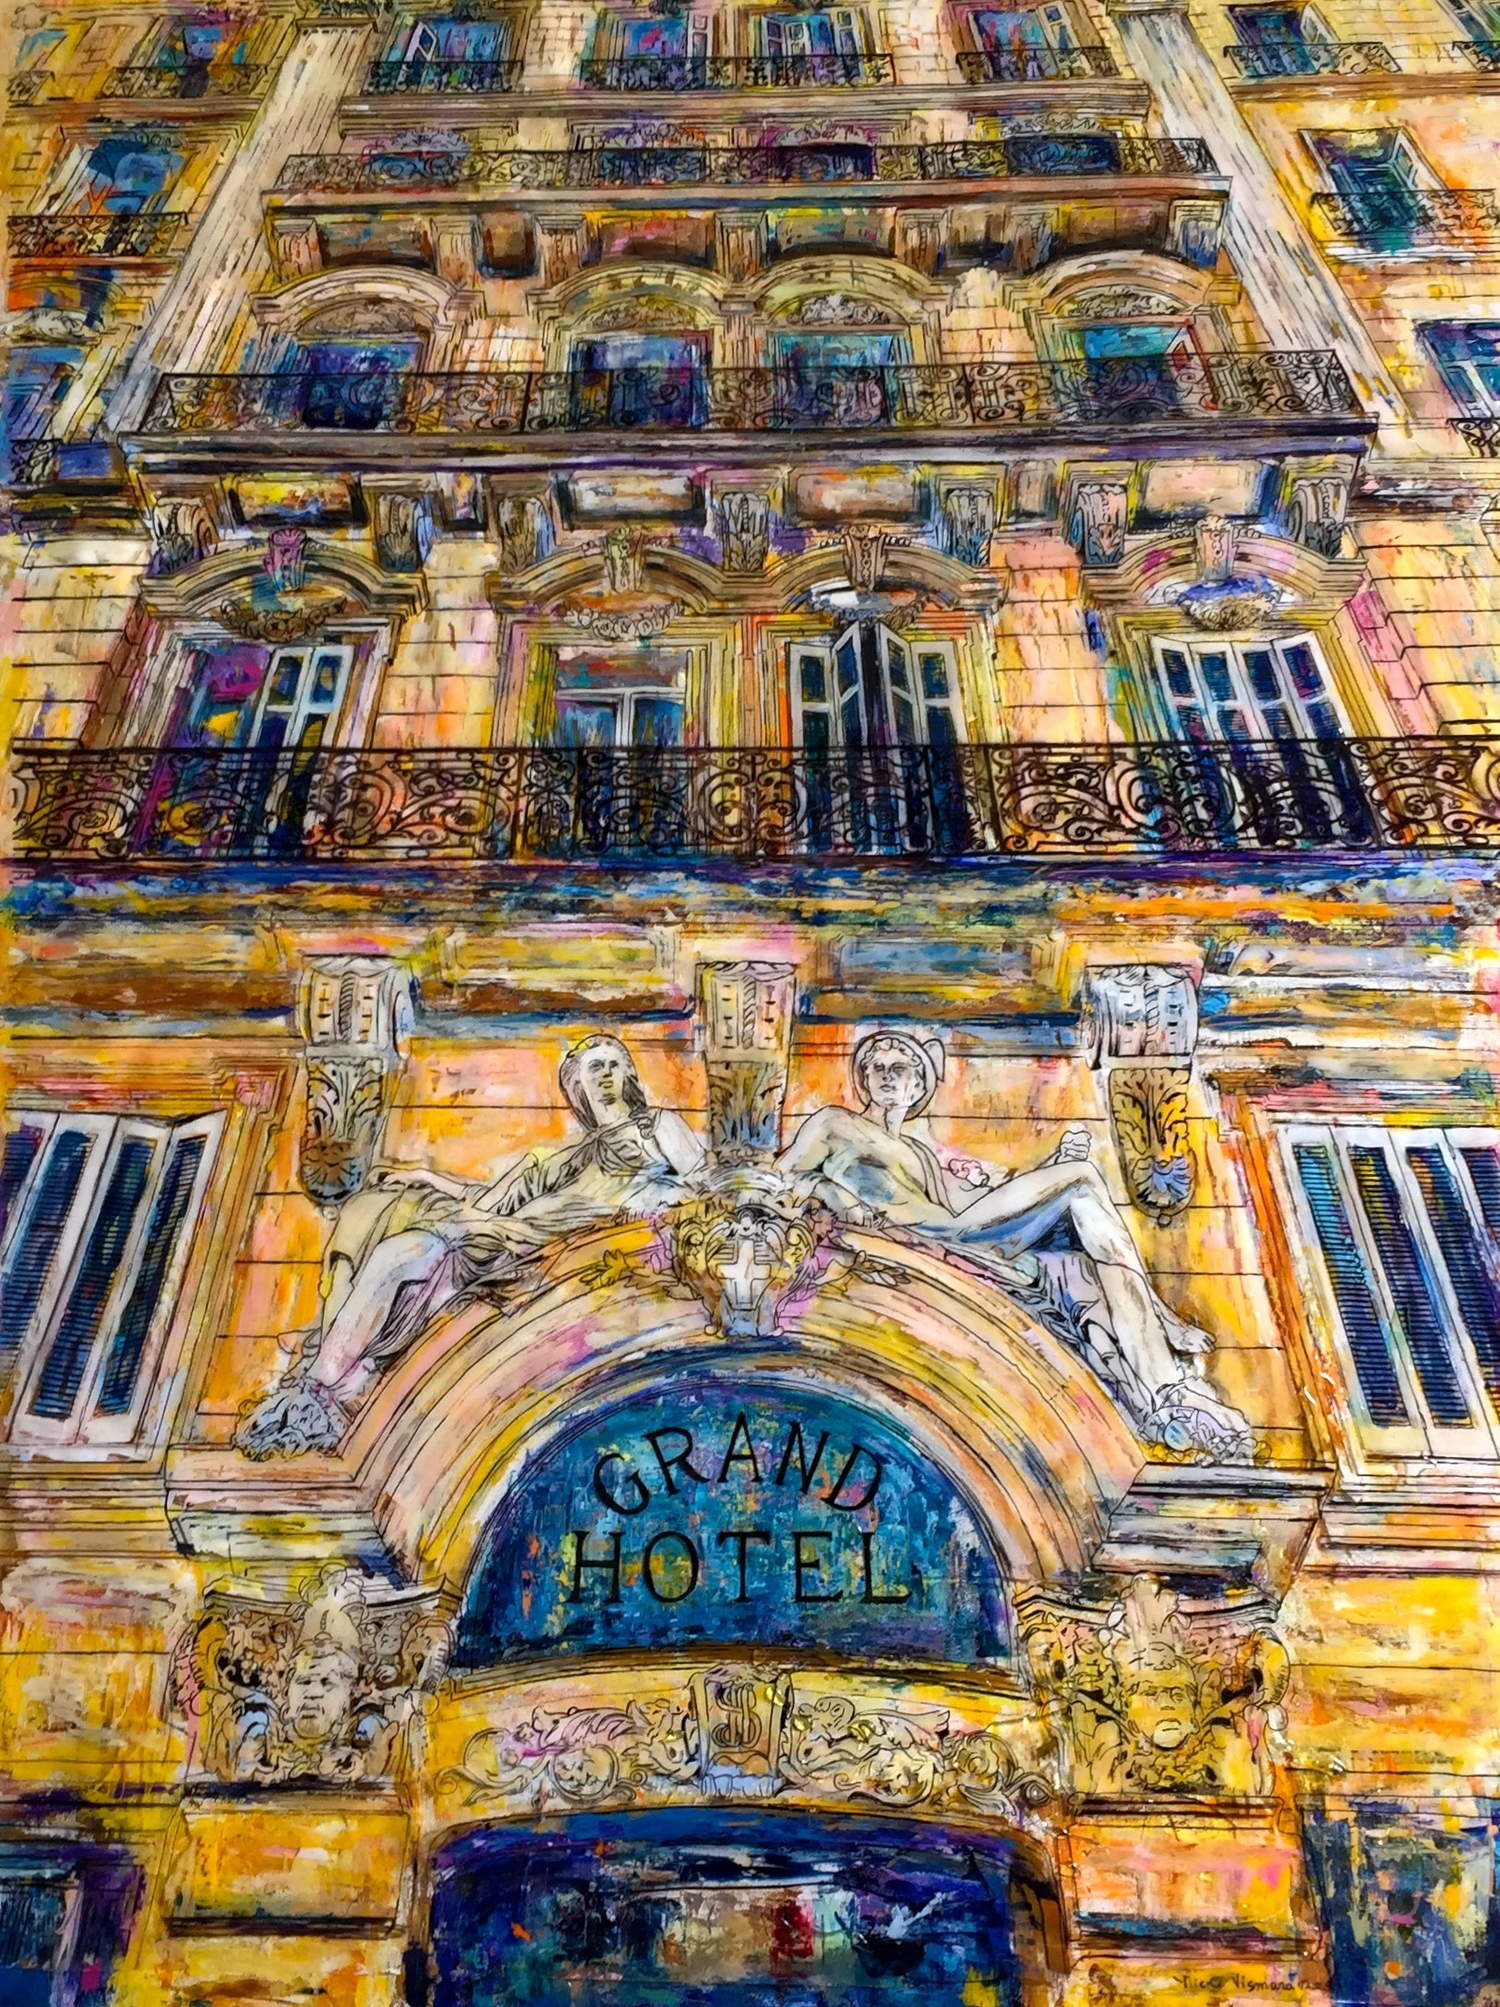 """LE GRAND HOTEL, MARSEILLE   36 x 48""""  Acrylic, acetate, ink, and epoxy resin on canvas  2015  SOLD"""